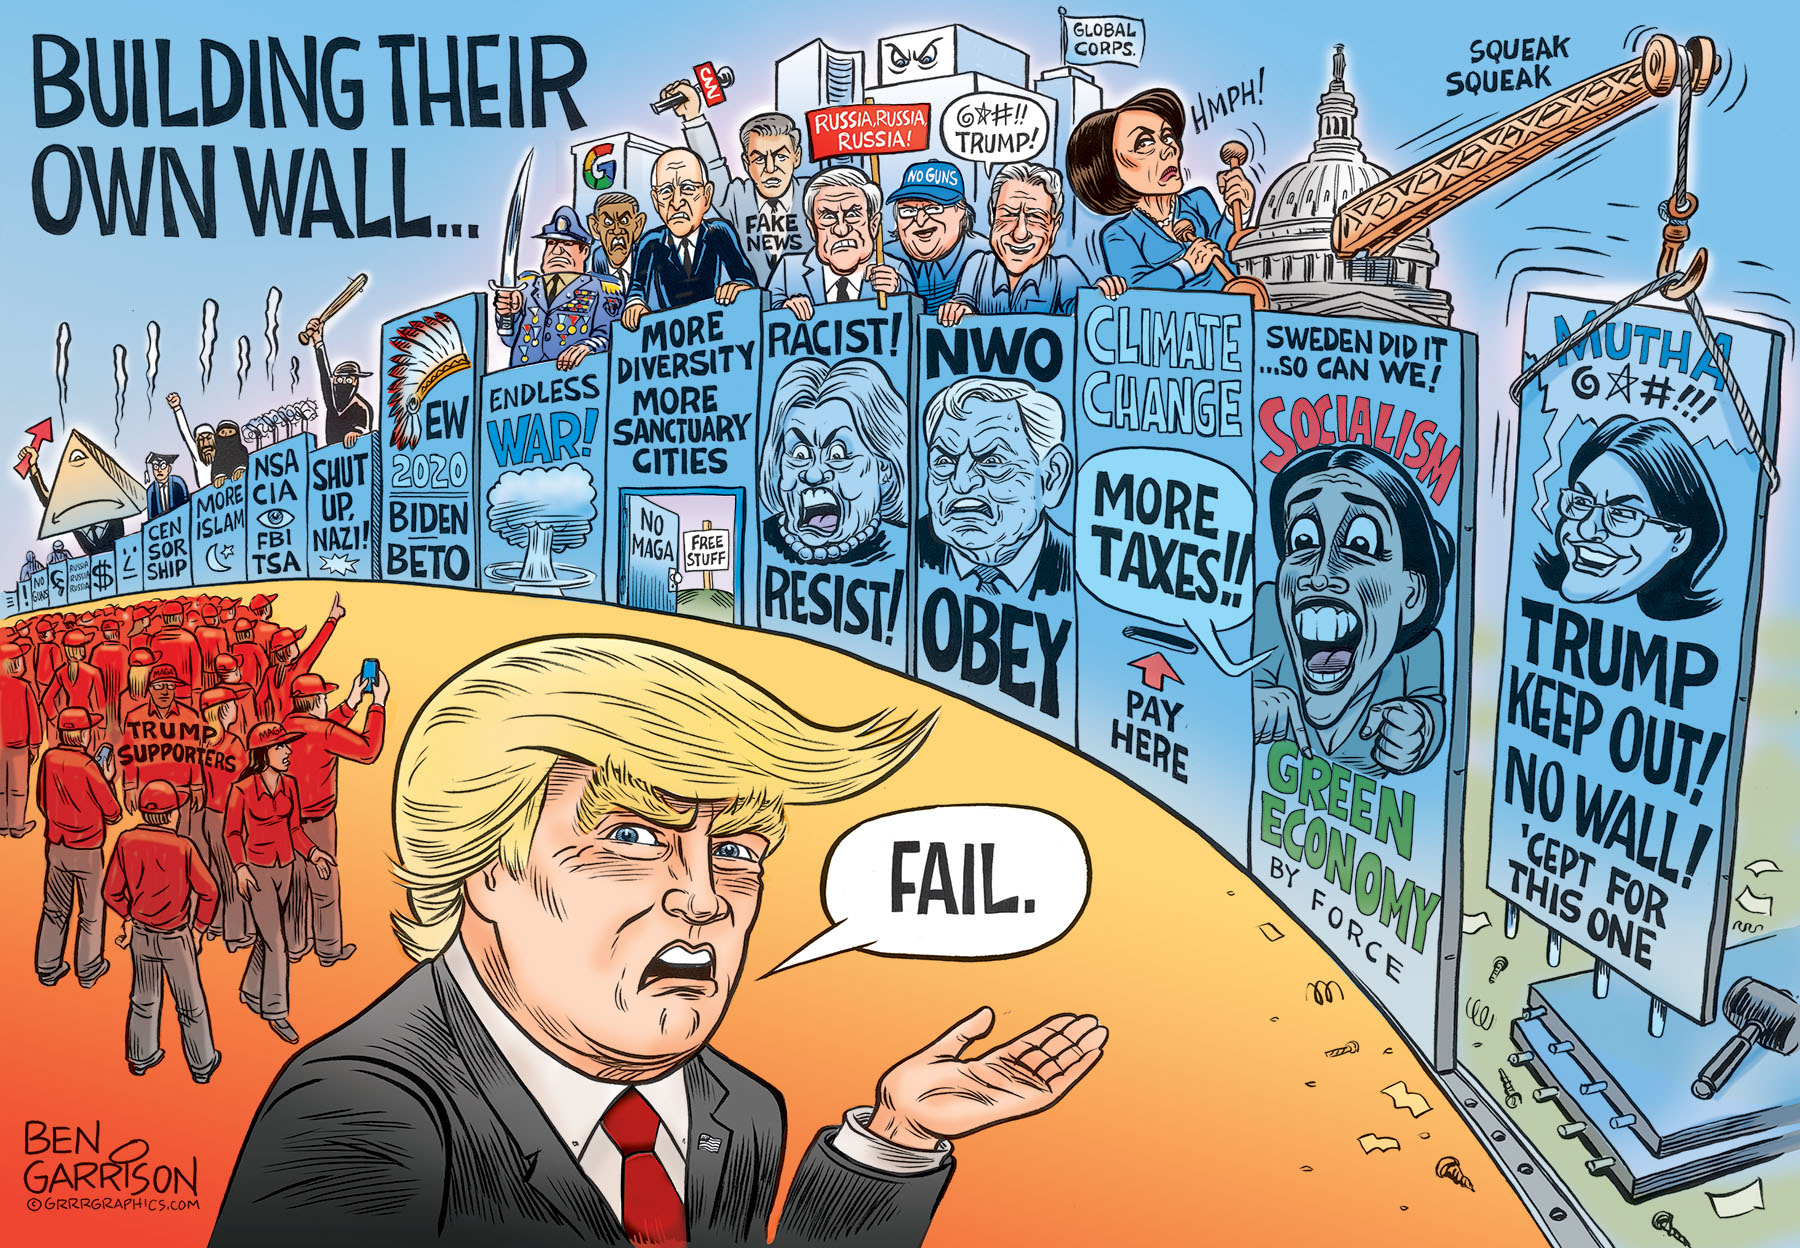 The Democrat Wall - Ben Garrison Cartoon - Conservative -6557